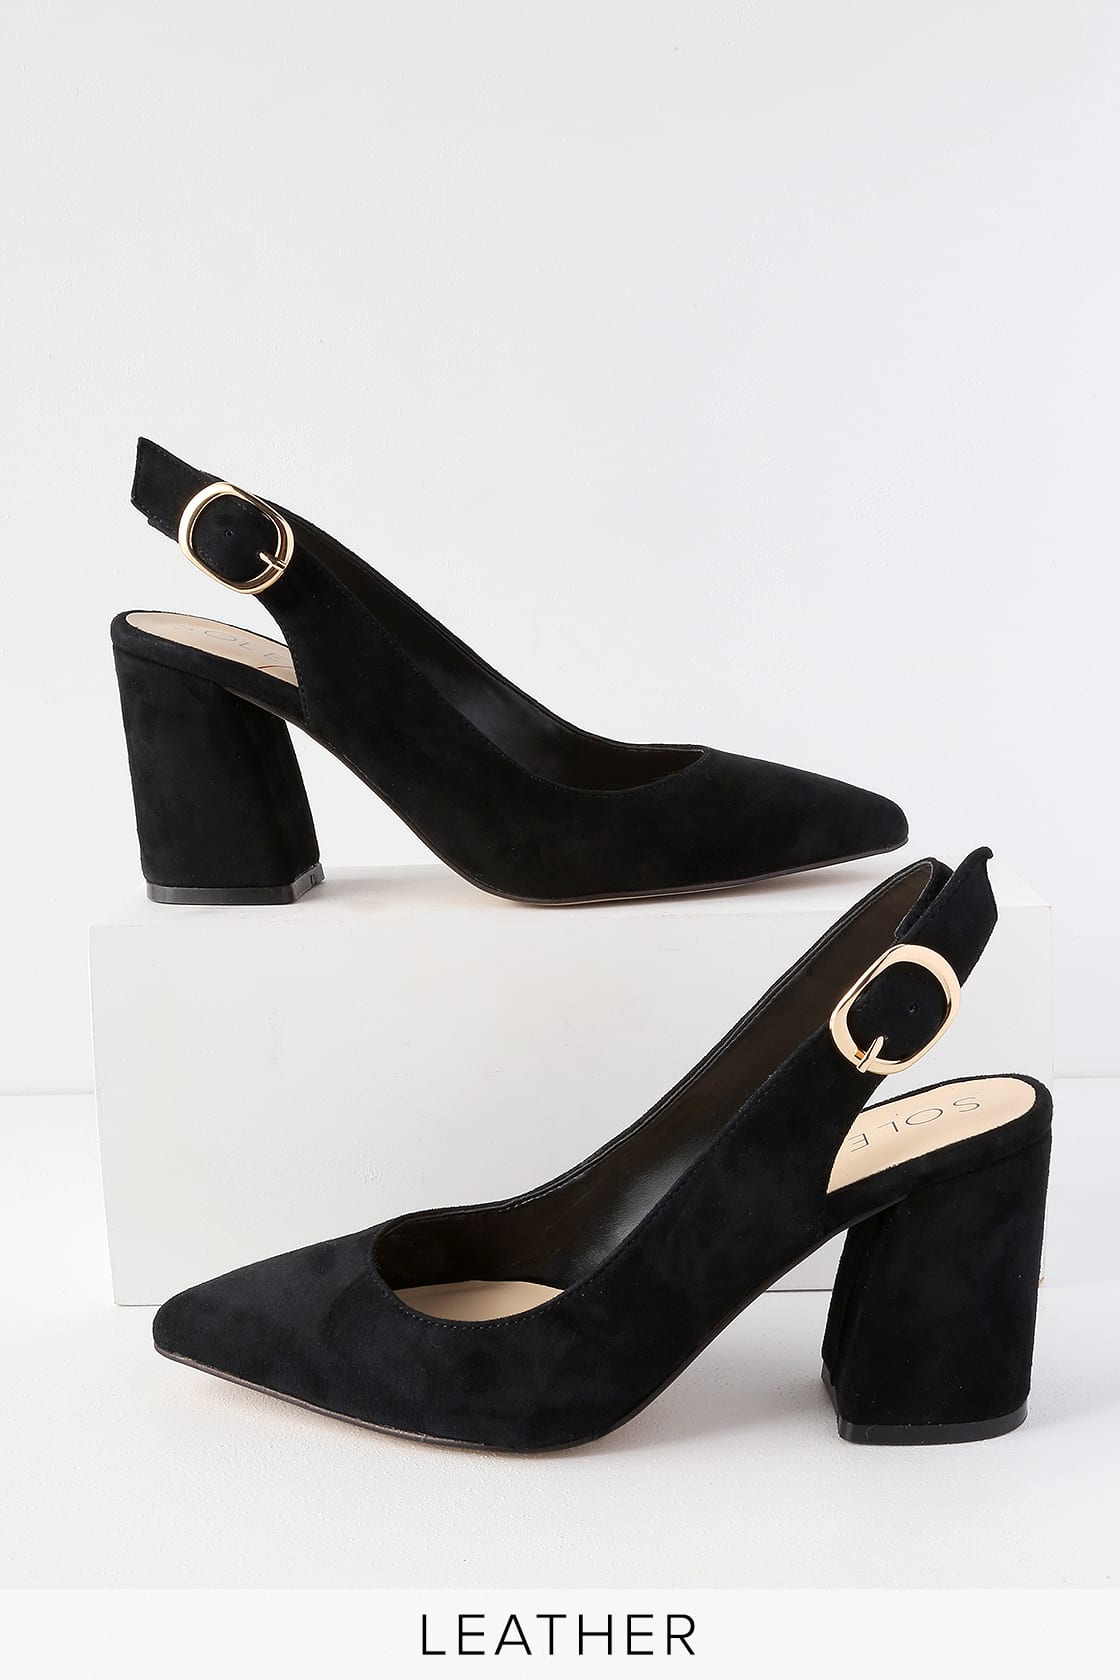 Trudie Black Suede Leather Slingback Pumps by Sole Society